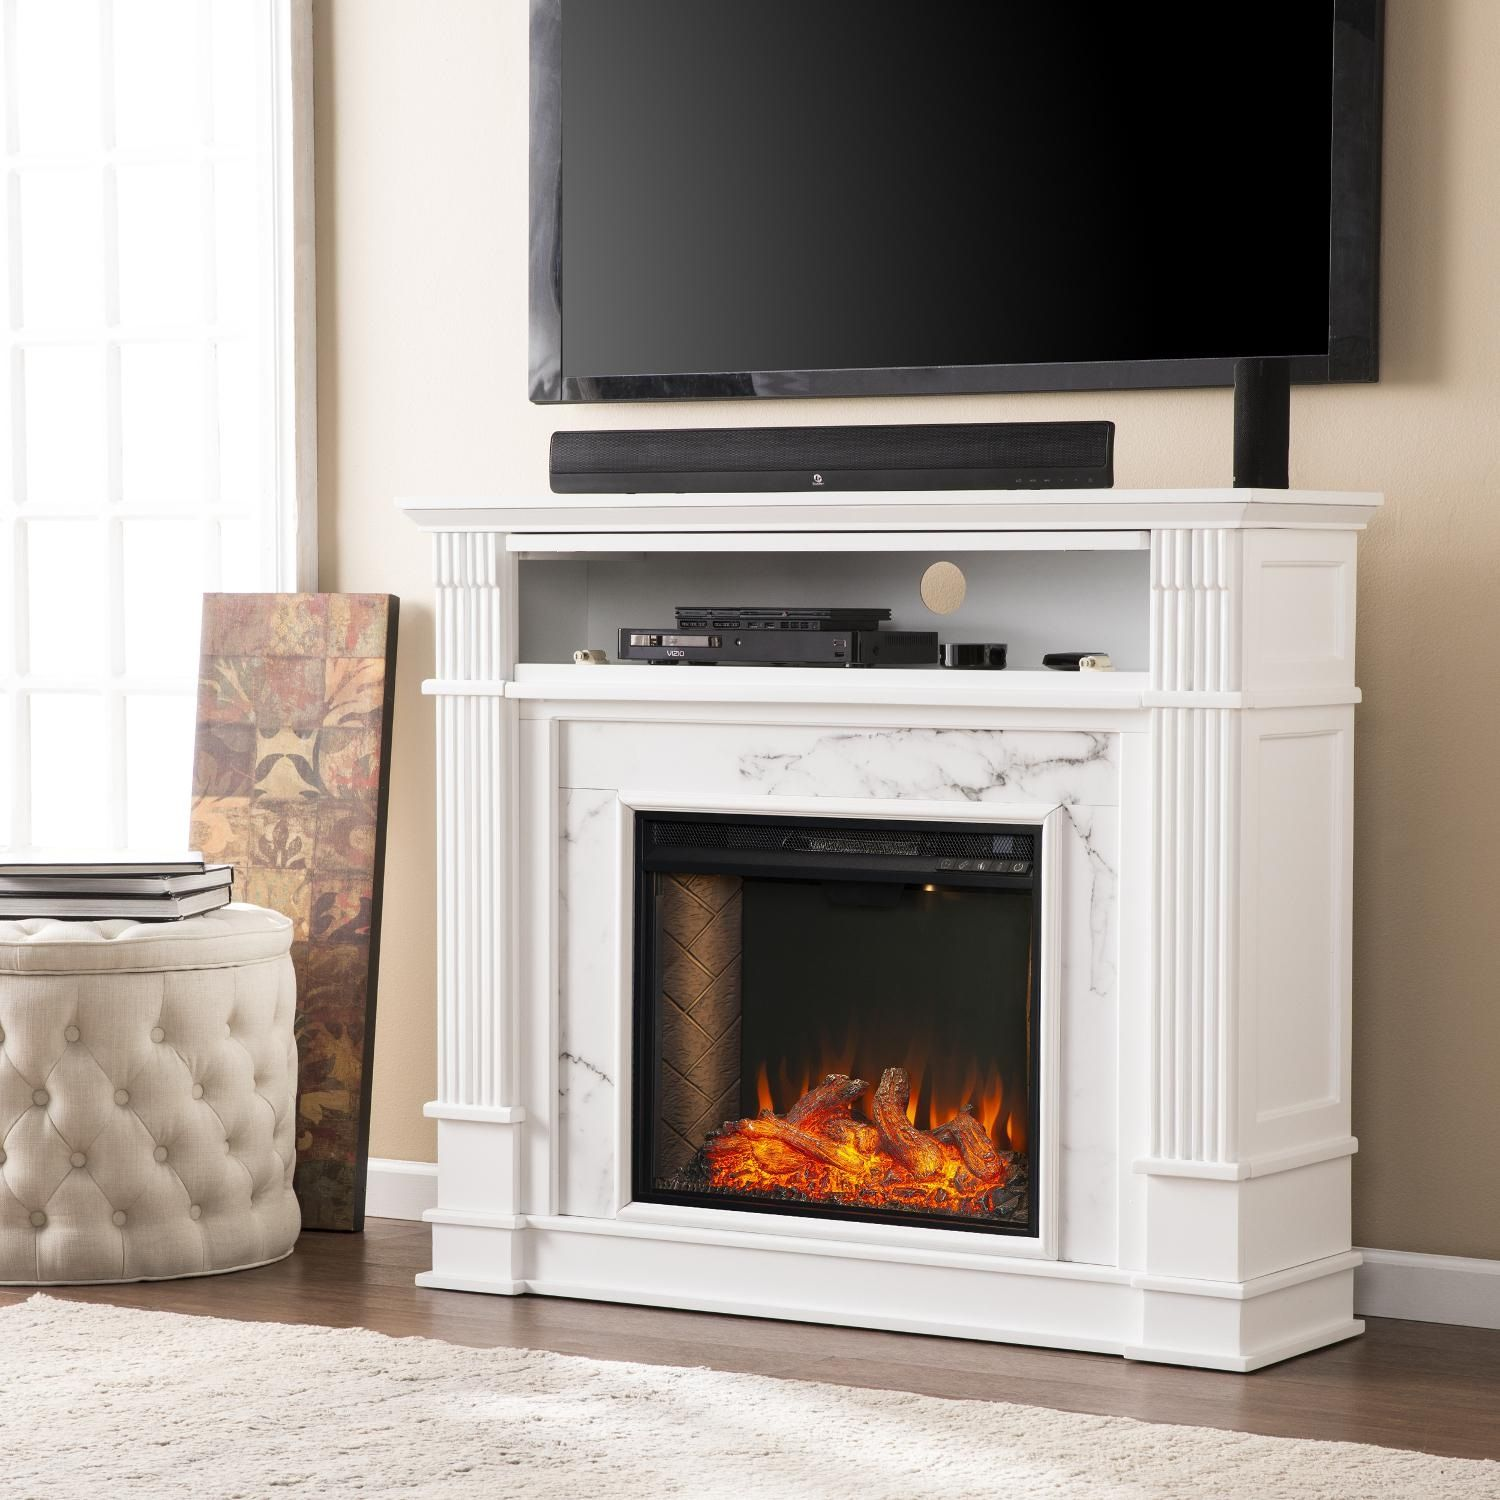 Southern Enterprises Highgate Electric Alexa Enabled Smart Media Fireplace White Fs9322 Bbqguys Media Fireplace White Electric Fireplace Freestanding Fireplace